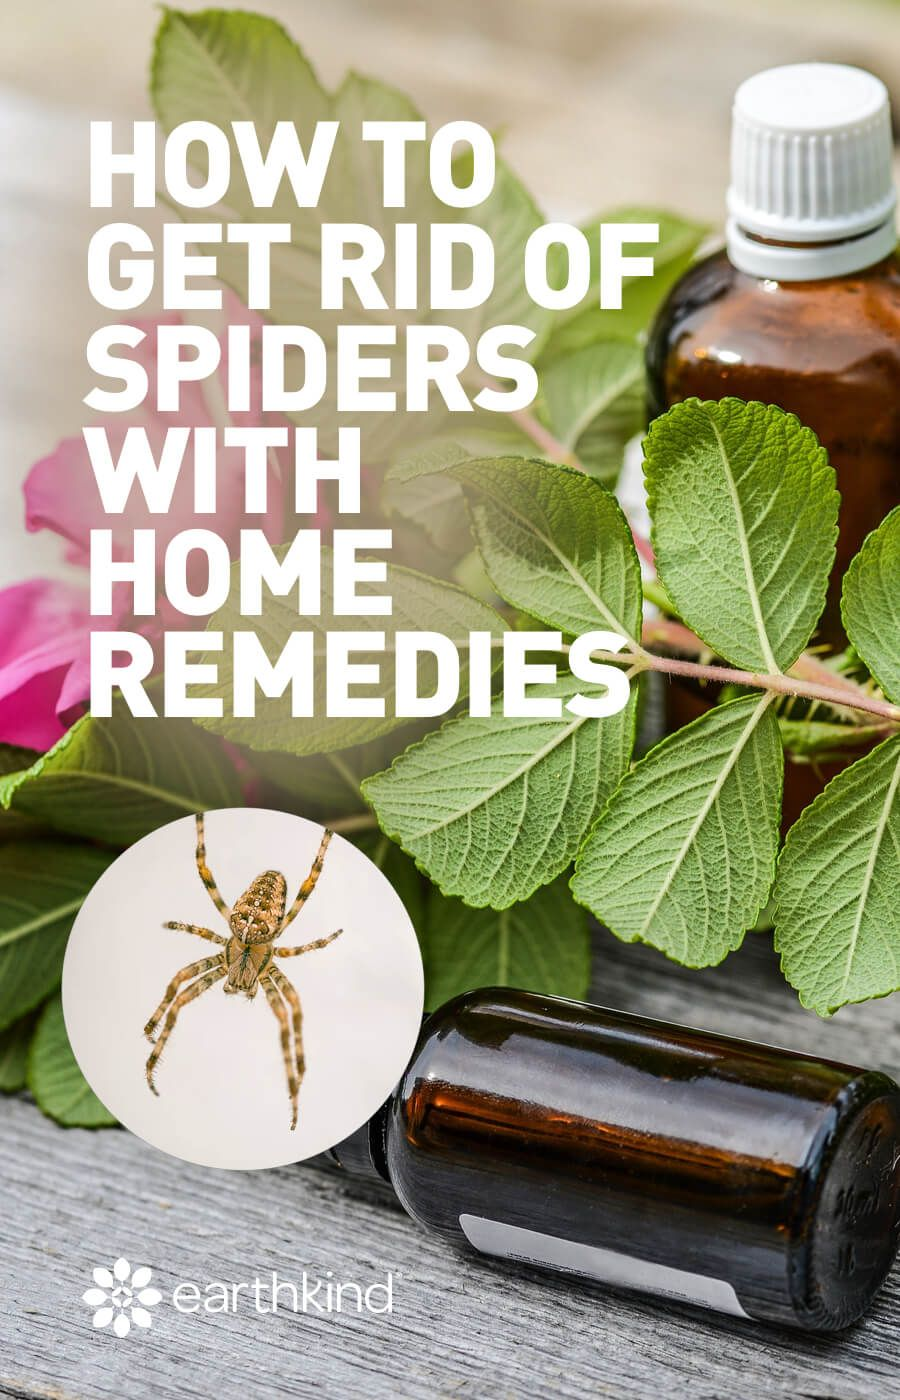 How To Get Rid Of Spiders With Home Remedies Earthkind Get Rid Of Spiders Home Remedies For Spiders Home Remedies